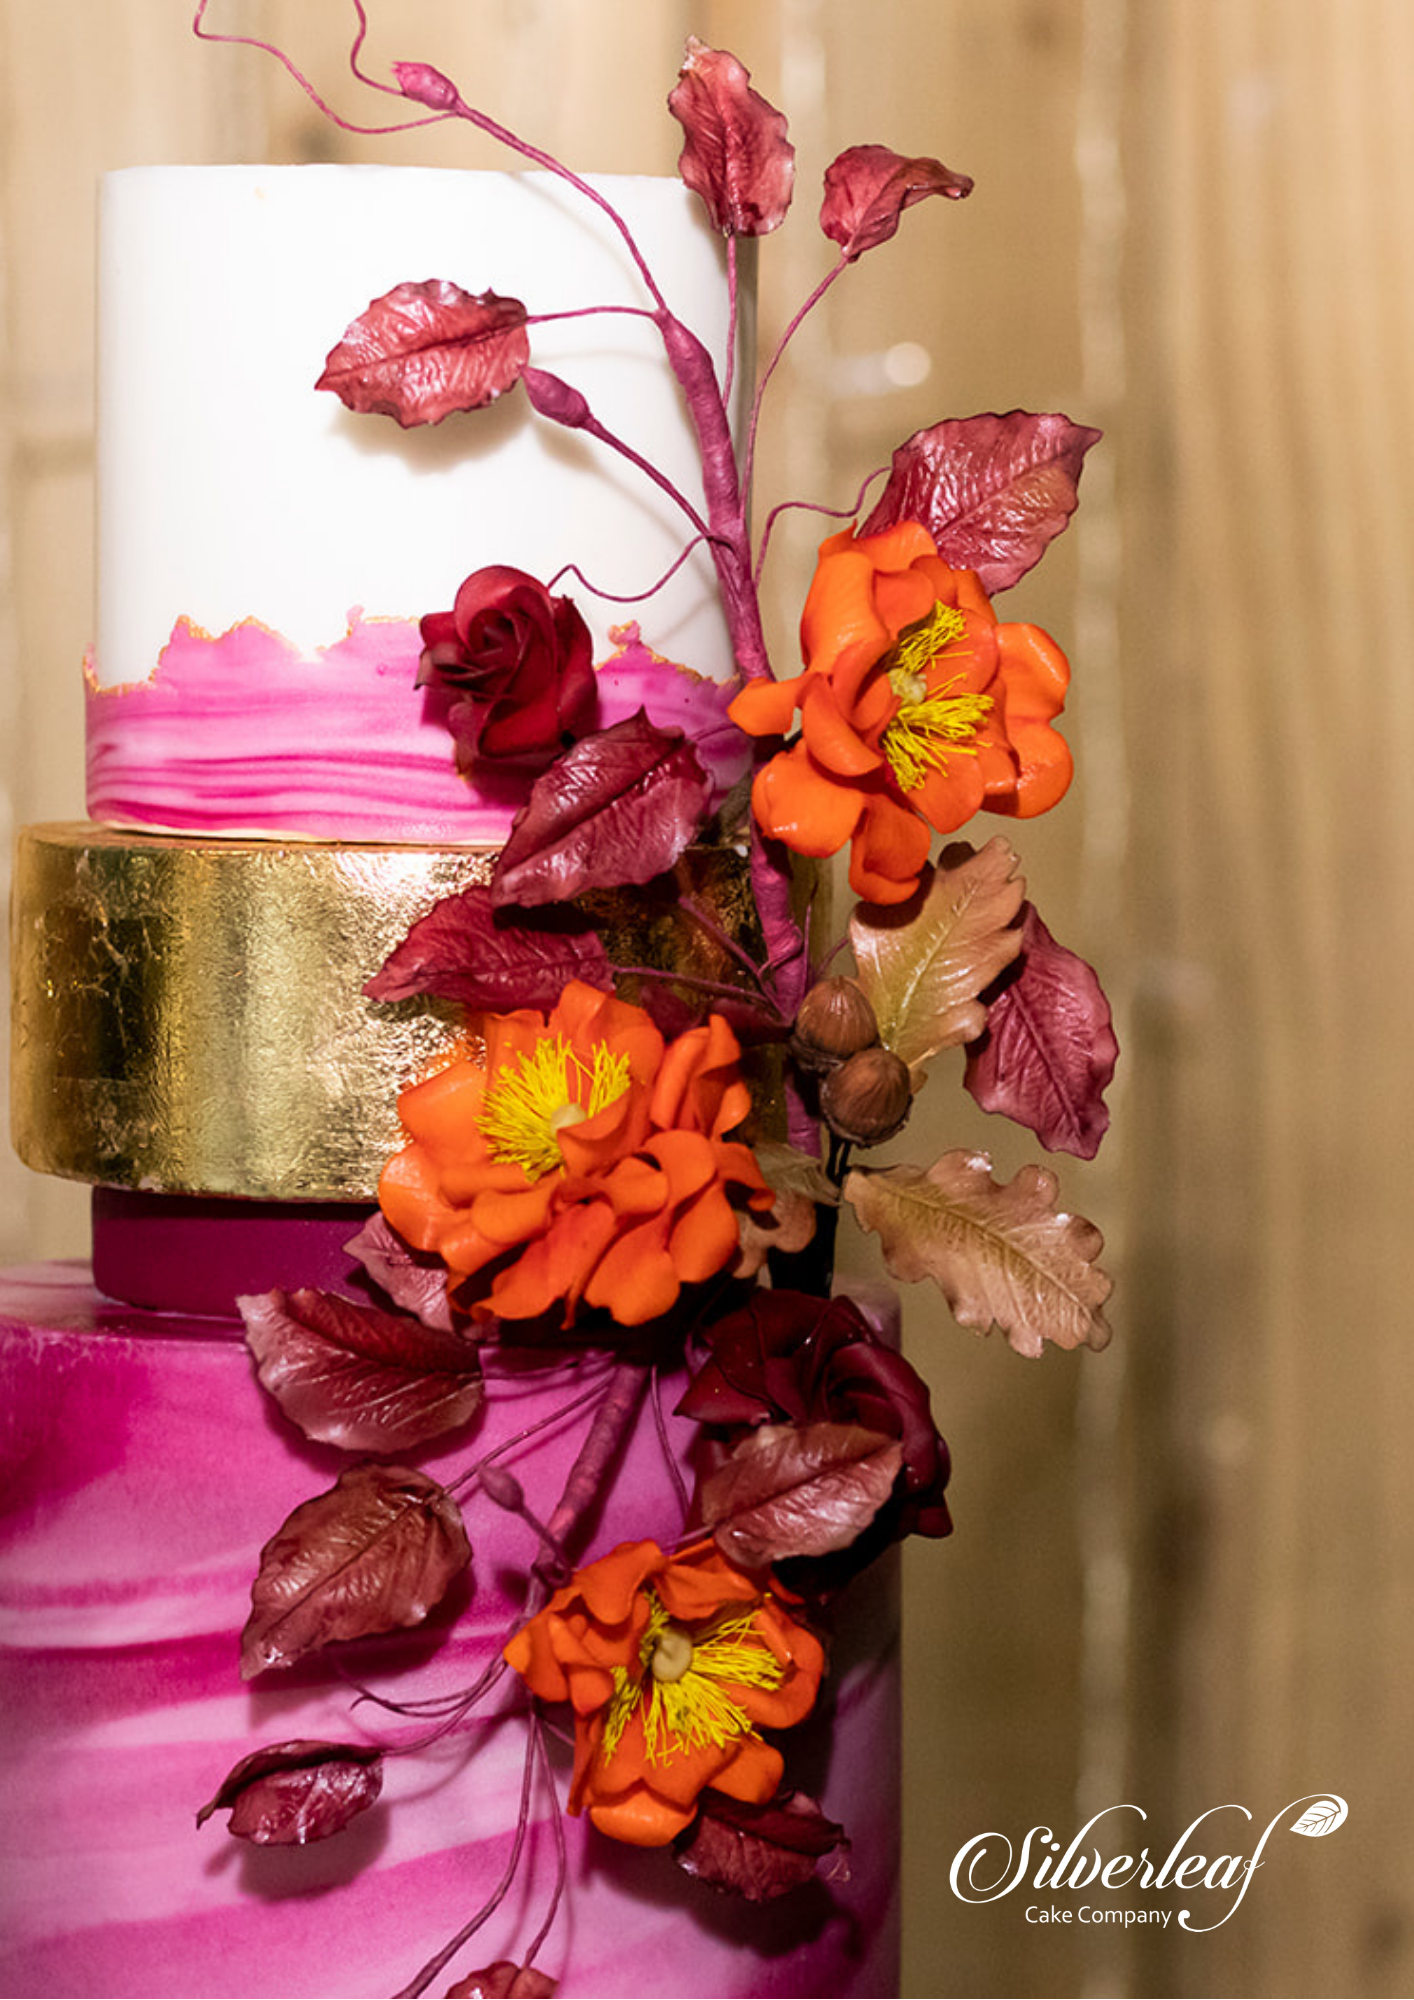 Three tier Dark and Pale Pink Marble Wedding Cake. Middle tier is fully gold leaf. Top tier is white with pink marble detailing. Finished with intricate orange sugar flowers, contrasting pink leaves and acorns